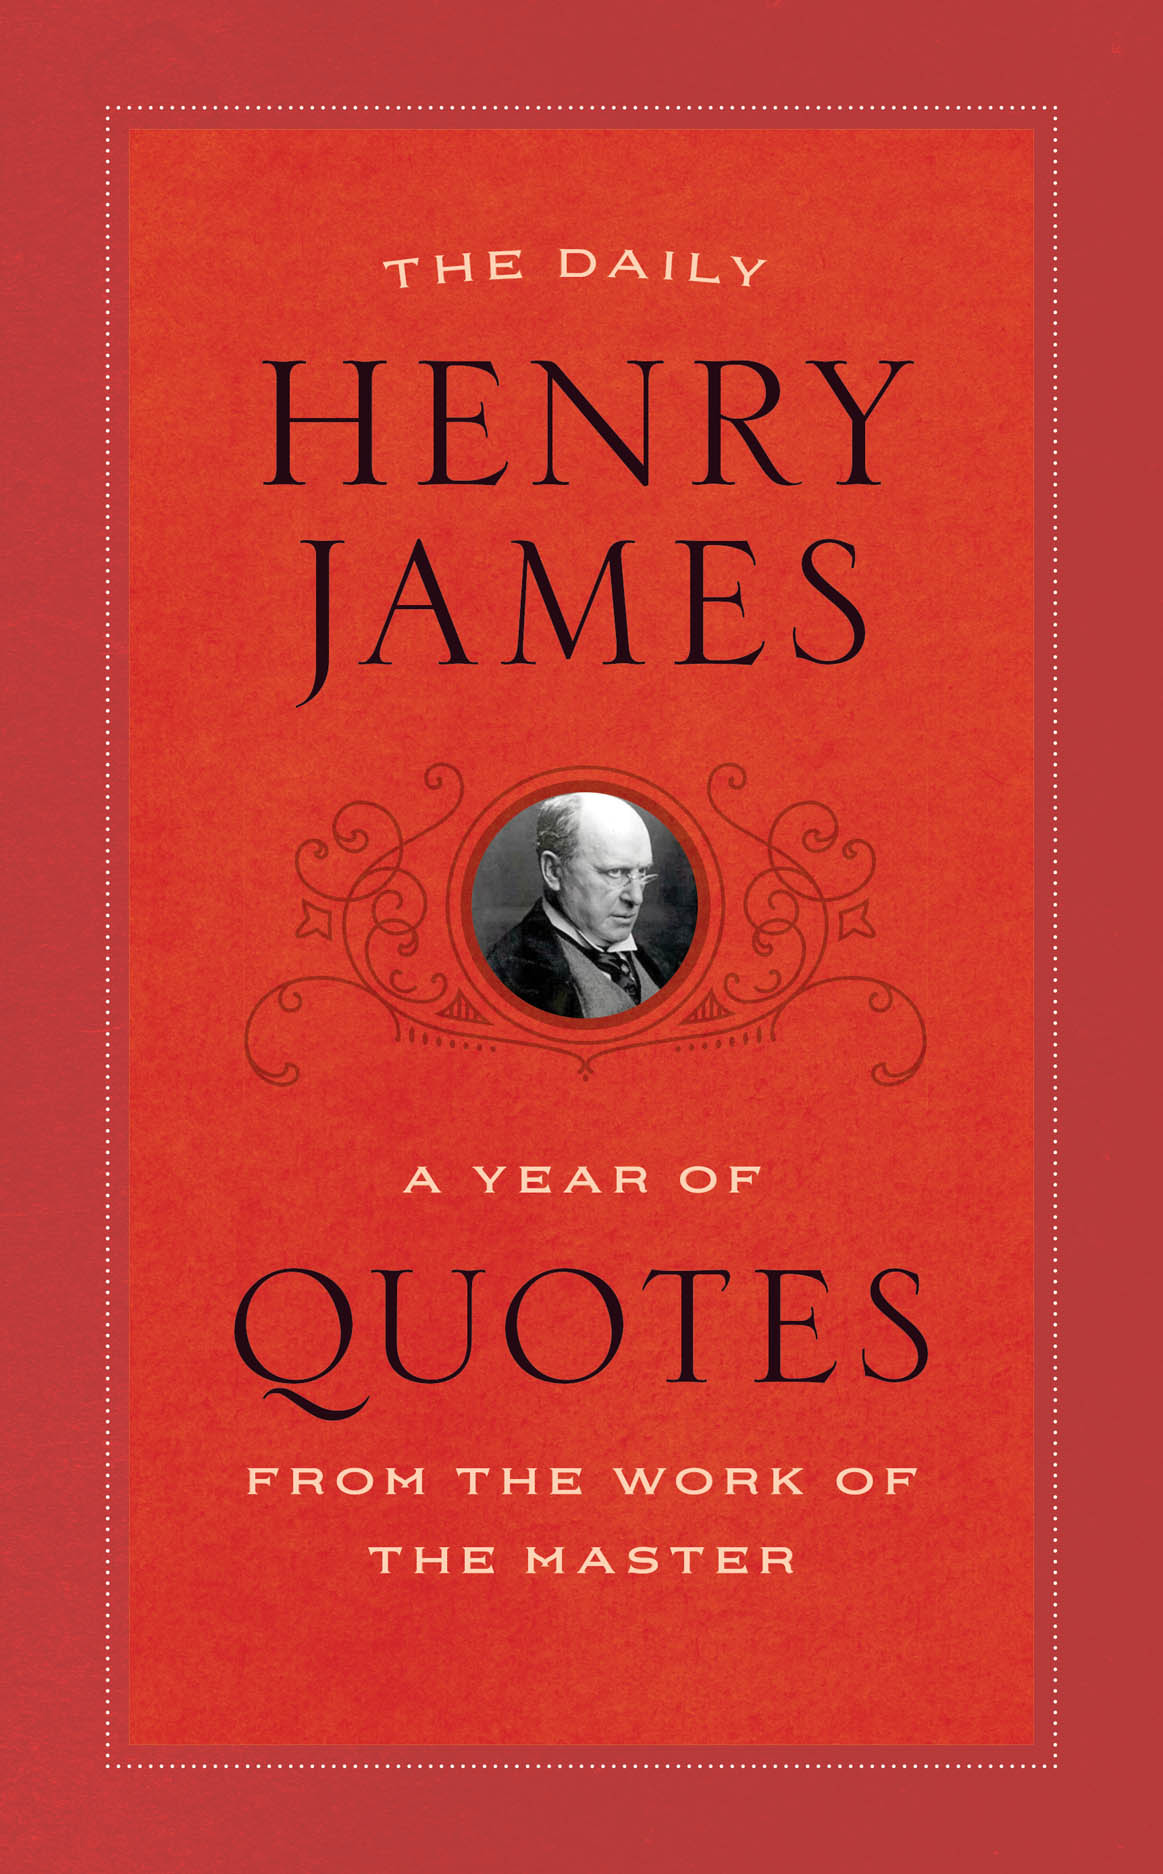 The Daily Henry James: A Year of Quotes from the Work of the Master